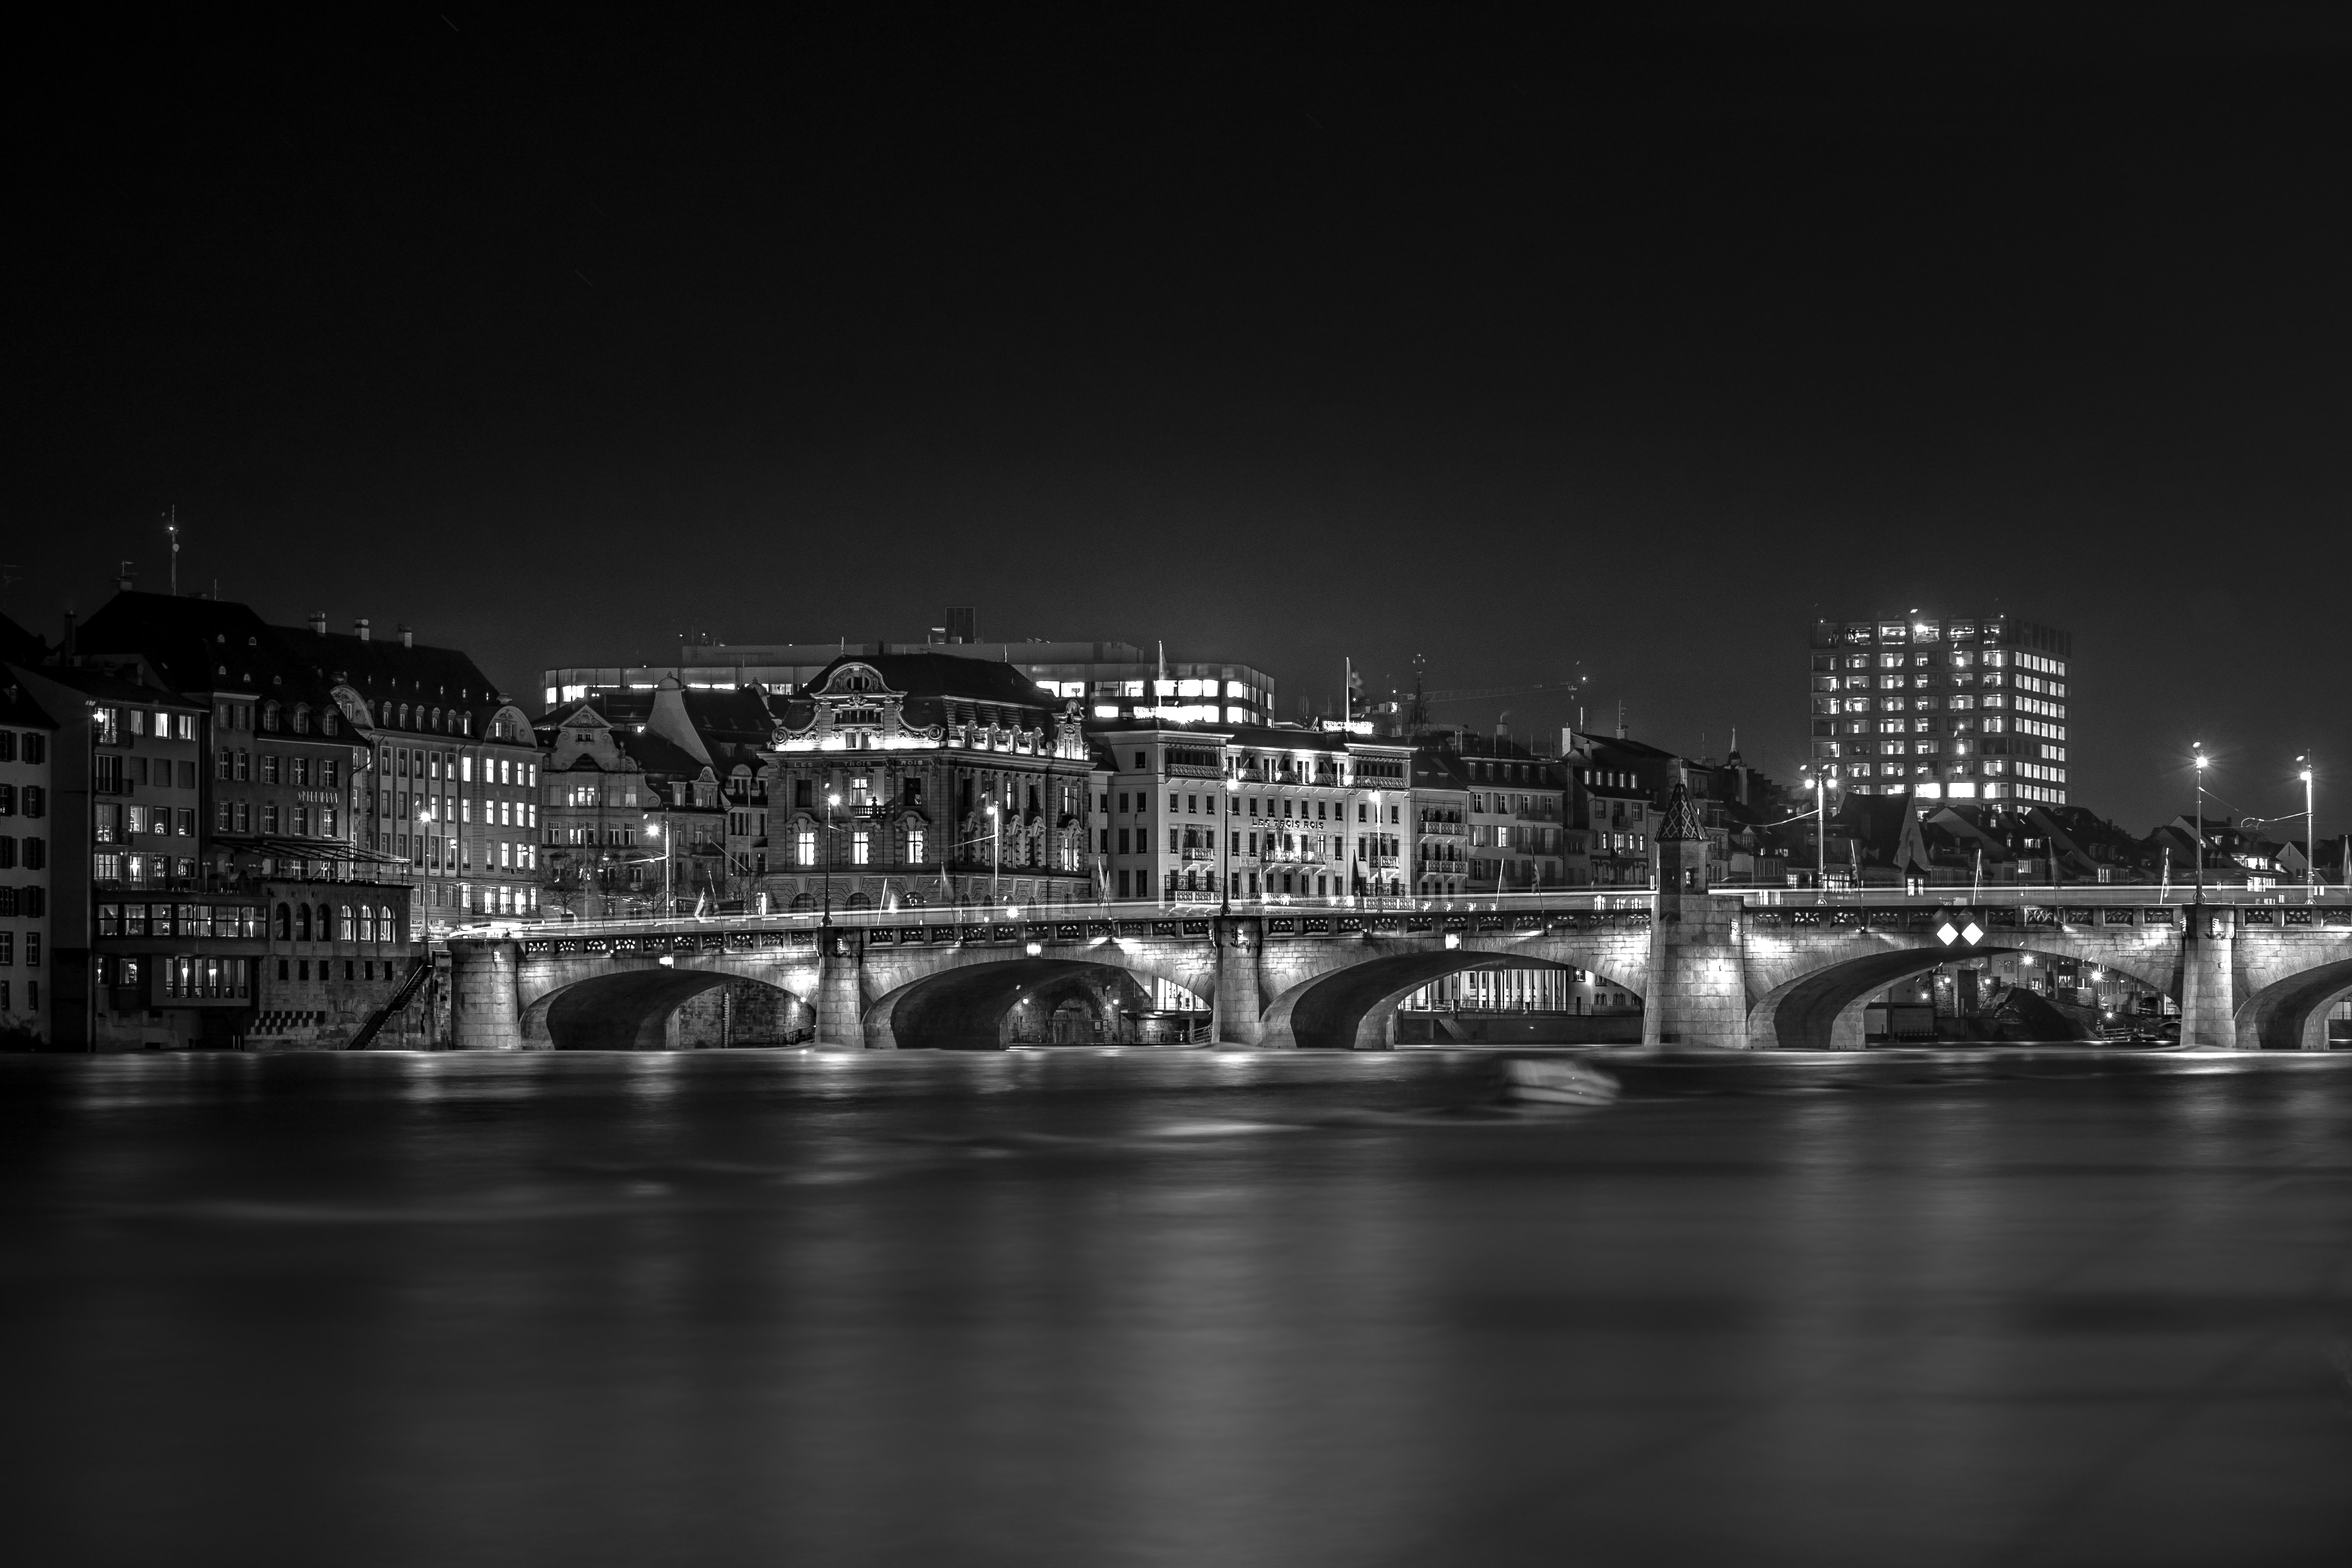 grayscale photography of bridge and city buildings